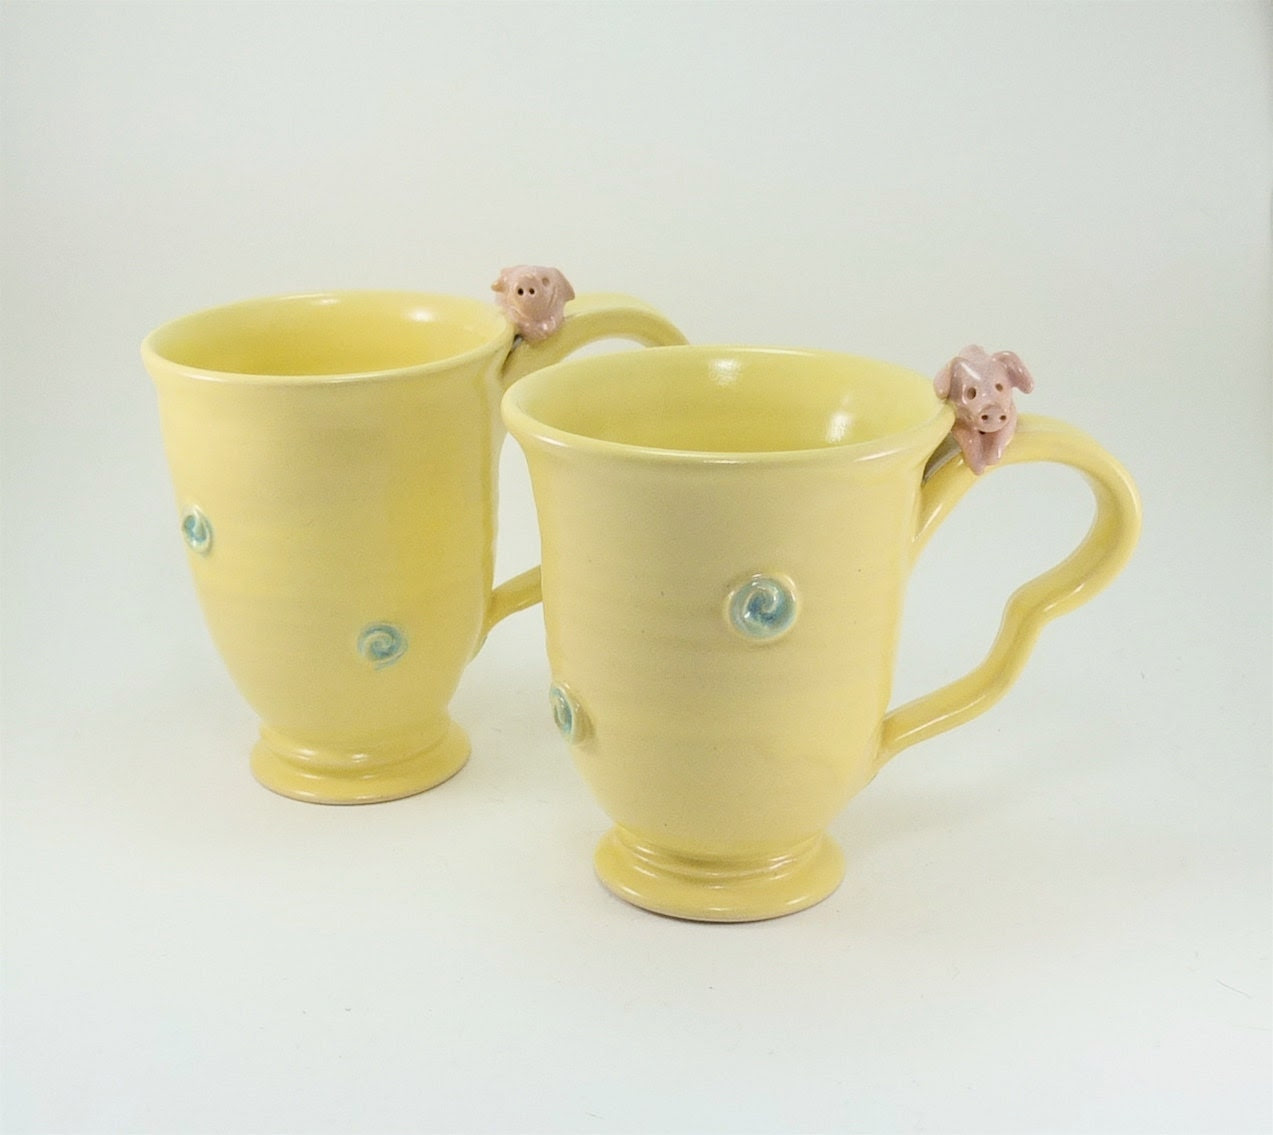 awesome pair of yellow piggy mugs